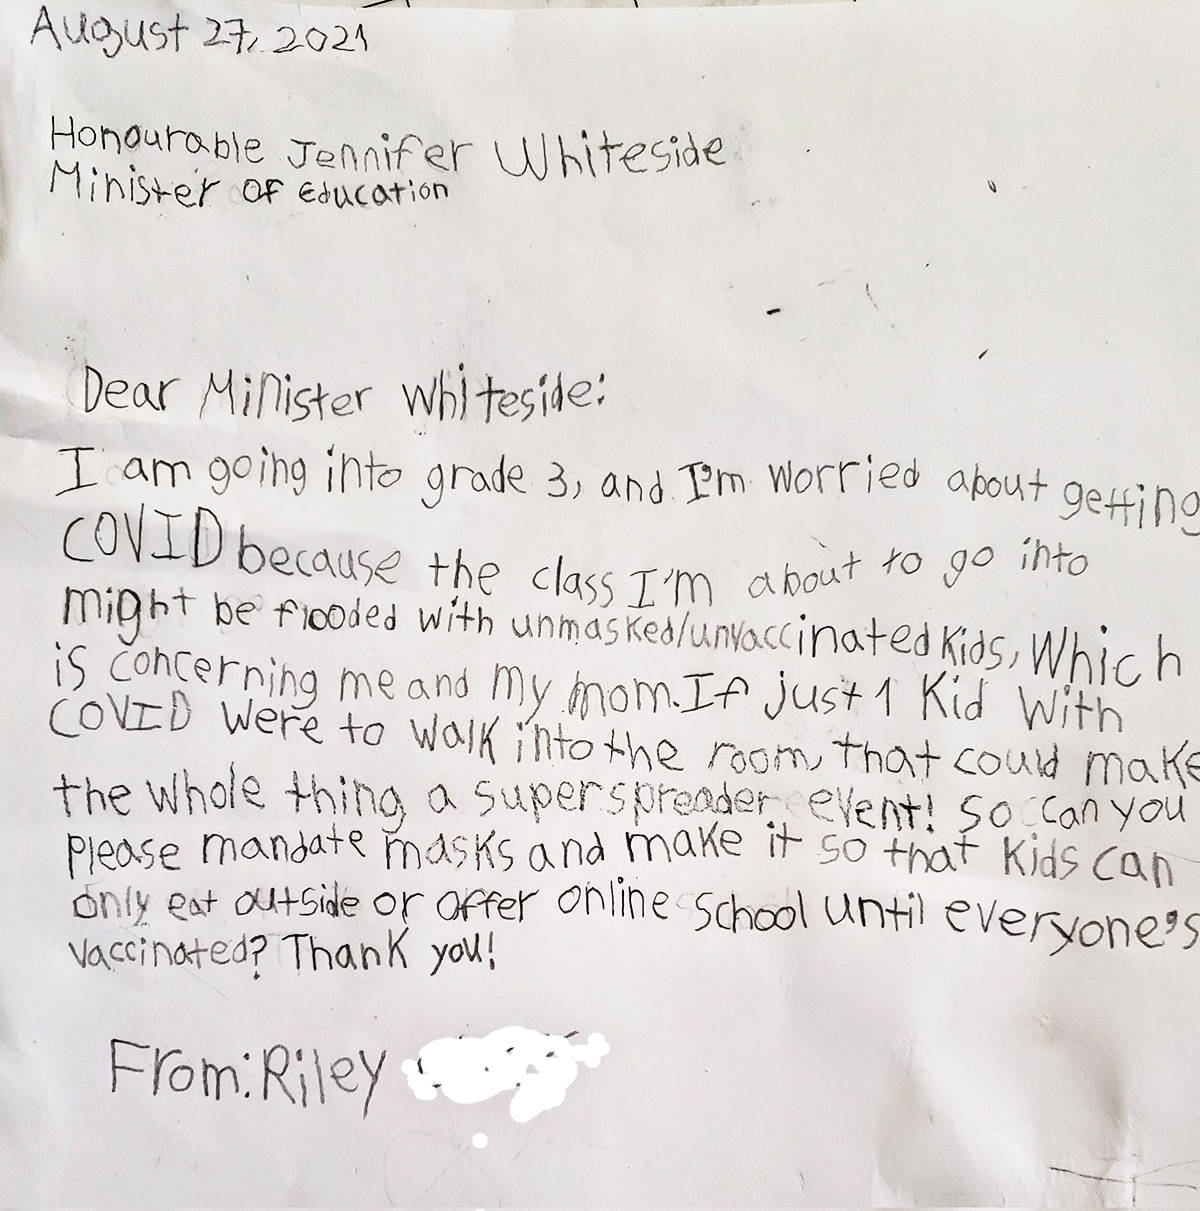 A seven-year-old has written to Education Minister Jennifer Whiteside asking for more safety measures in schools for younger kids who cannot be vaccinated. (Tweet)